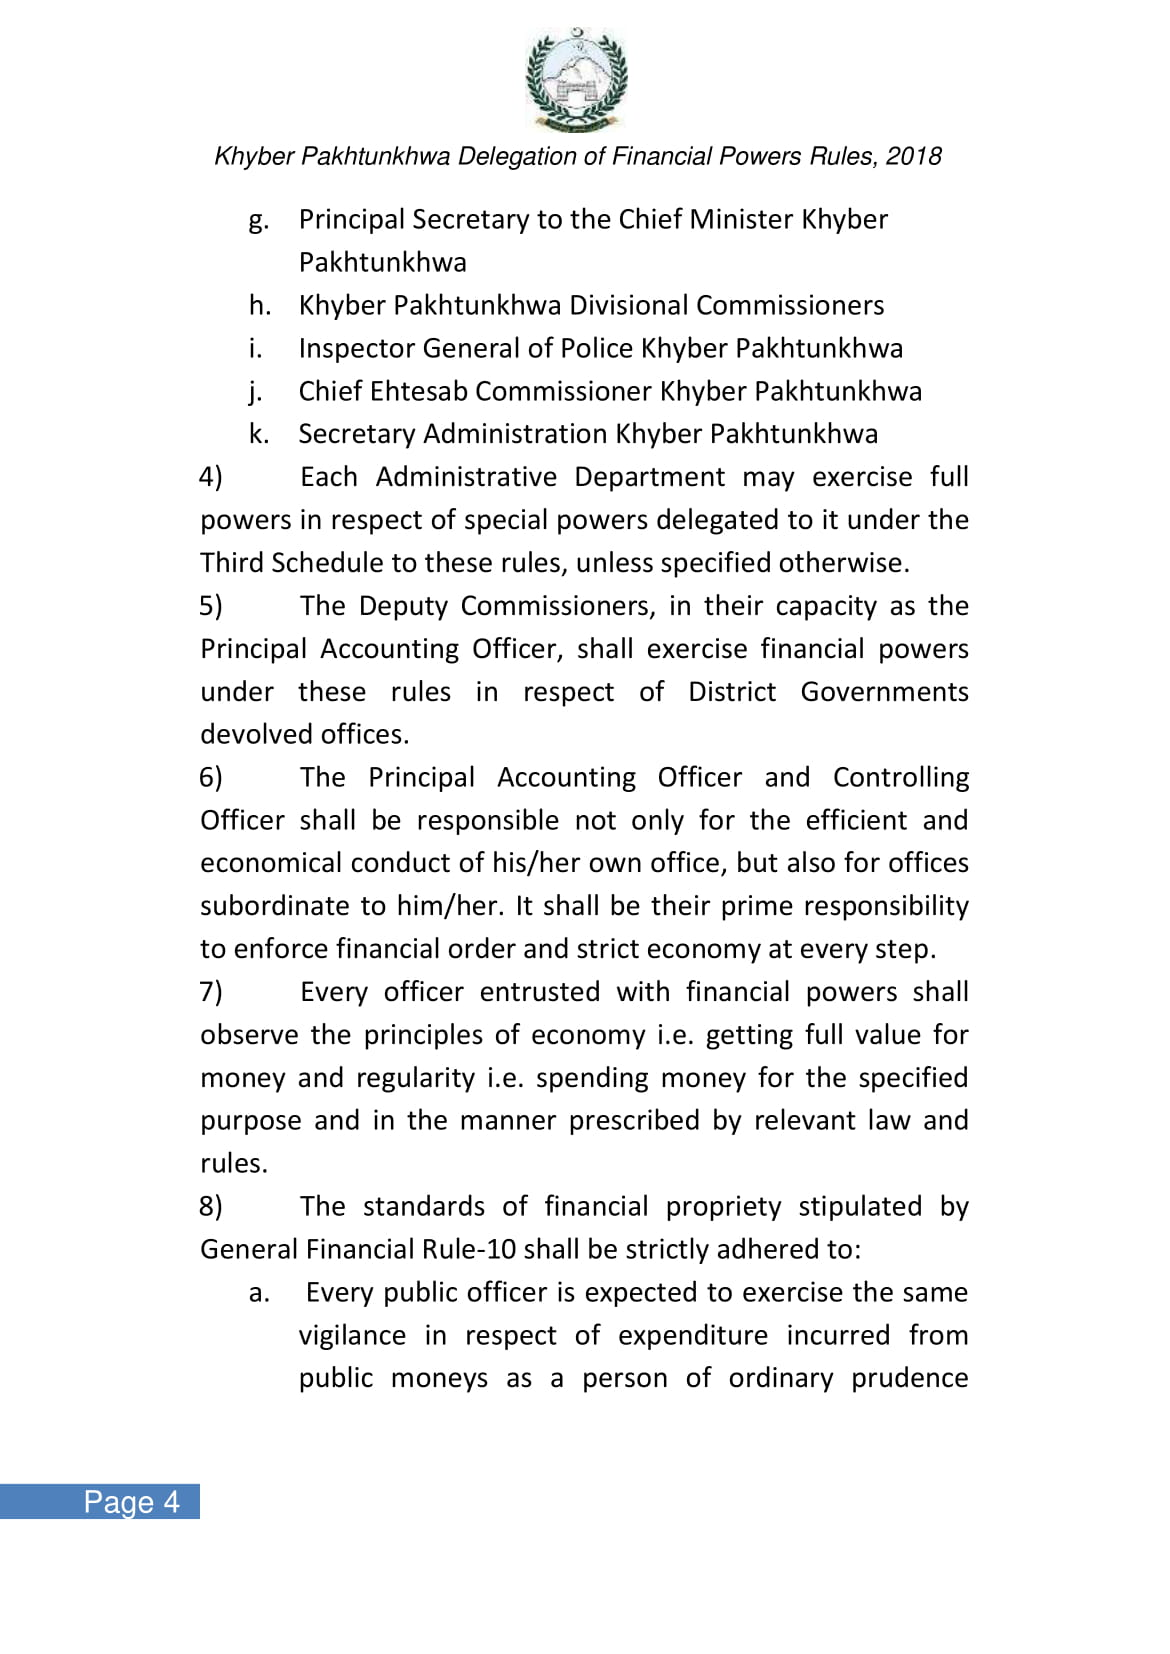 kp-delegation-of-financial-power-rules-2018-09